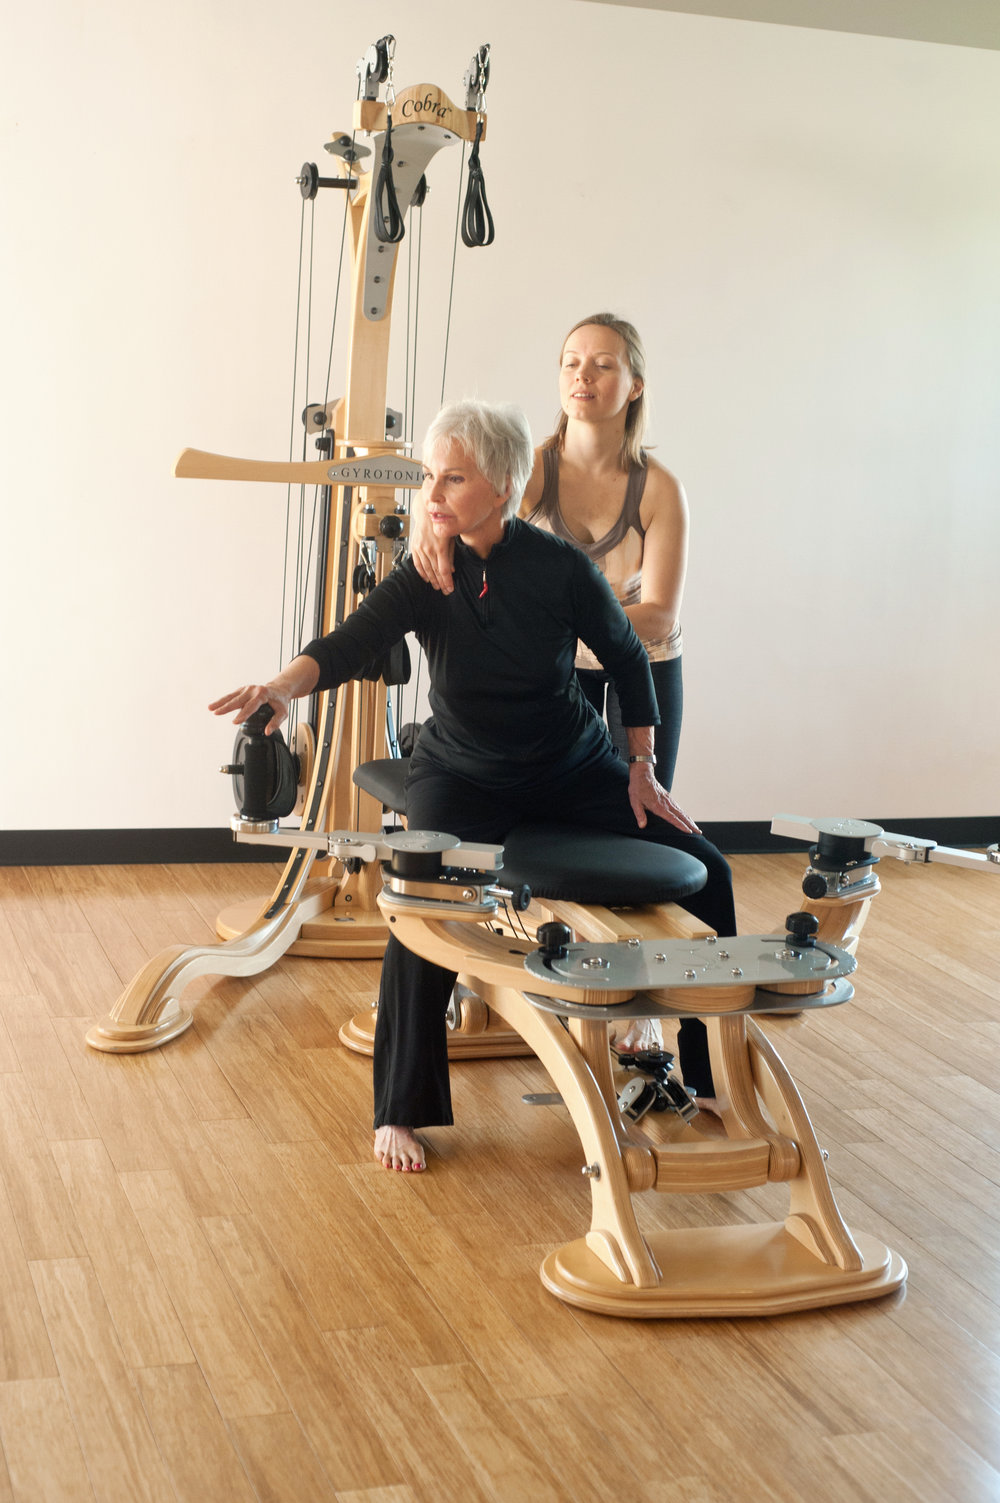 GYROTONIC® trio and duet classes on the GYROTONIC® pulley tower